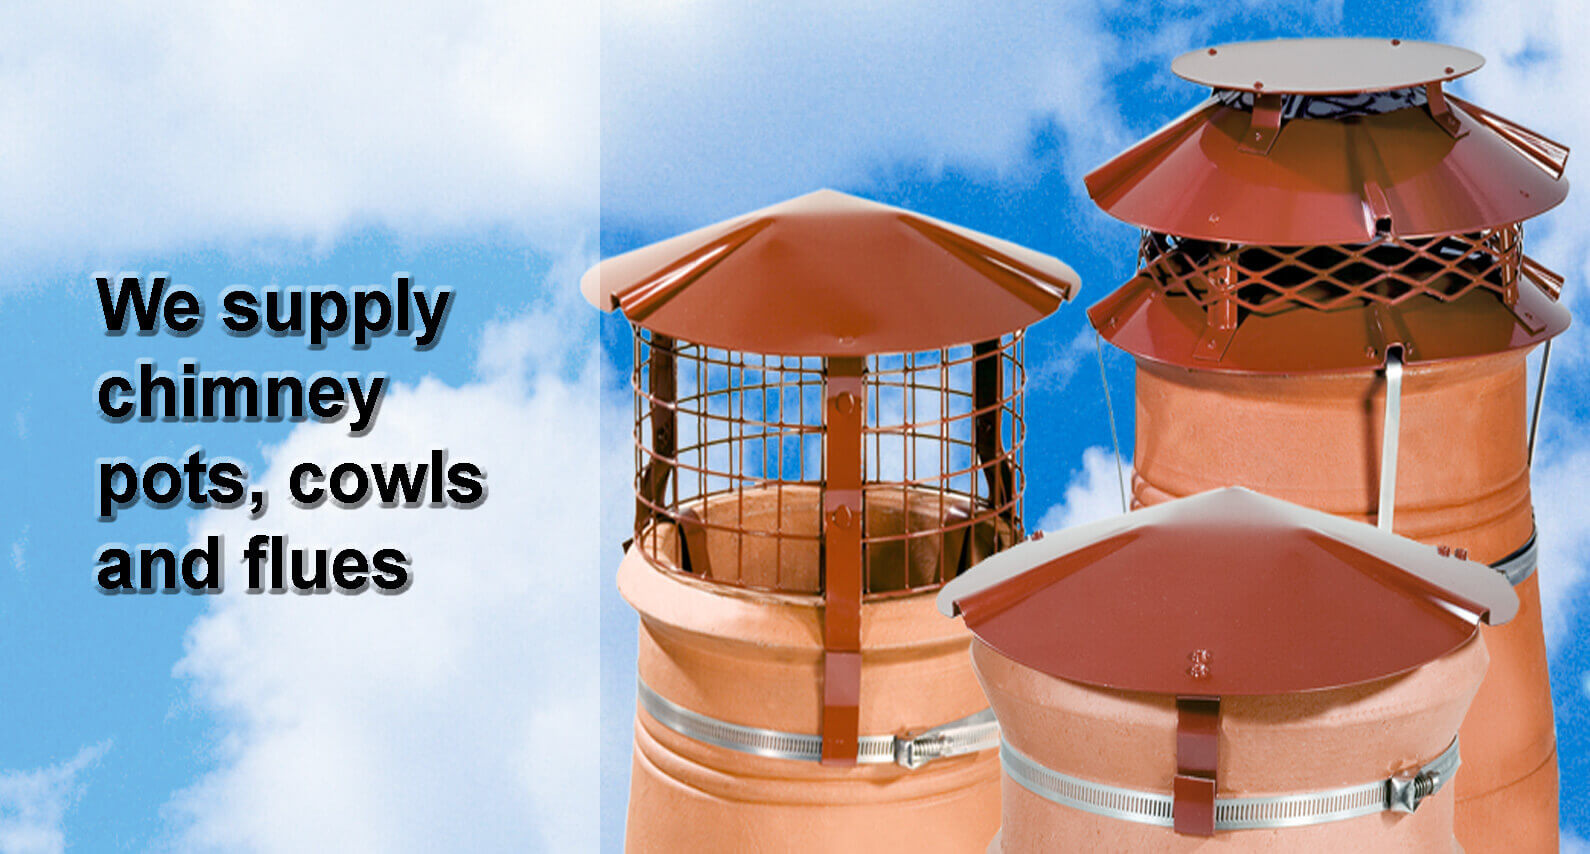 Chimneys & Cowls from About Roofing Supplies